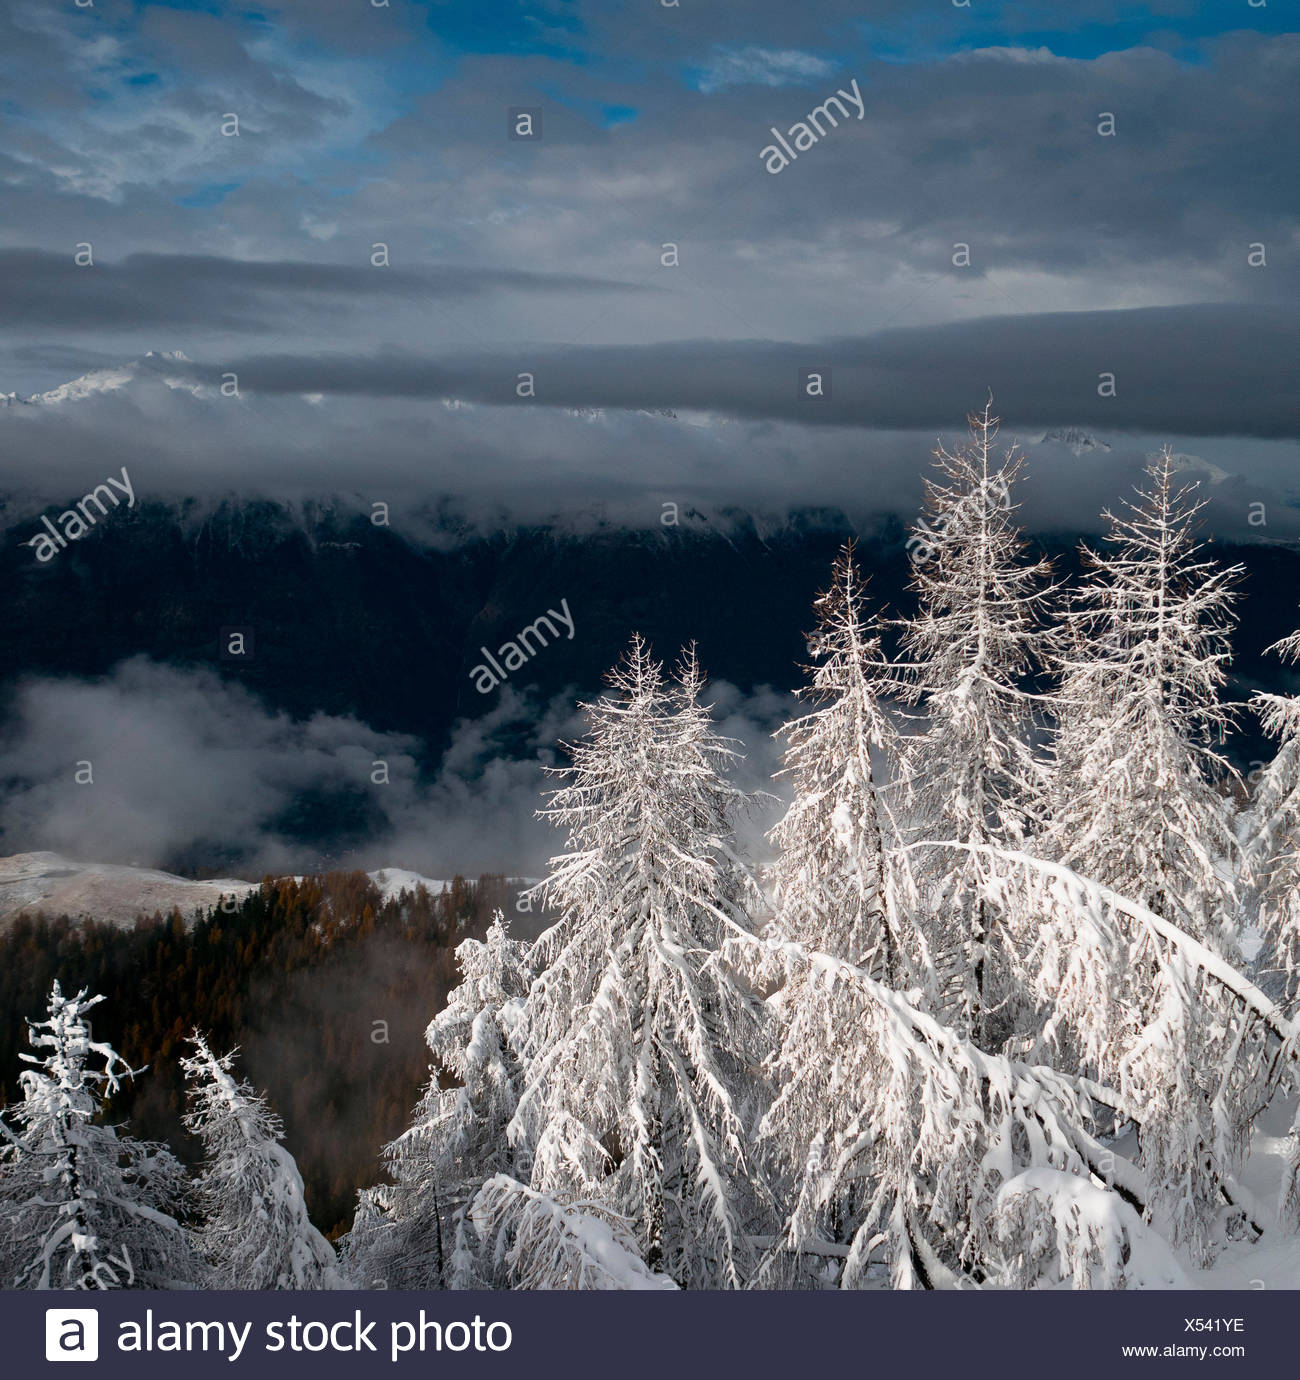 Severe contrasts between a recent snow covered larchs and the dark bottom of and alpine valley, Valtellina, Italy - Stock Image